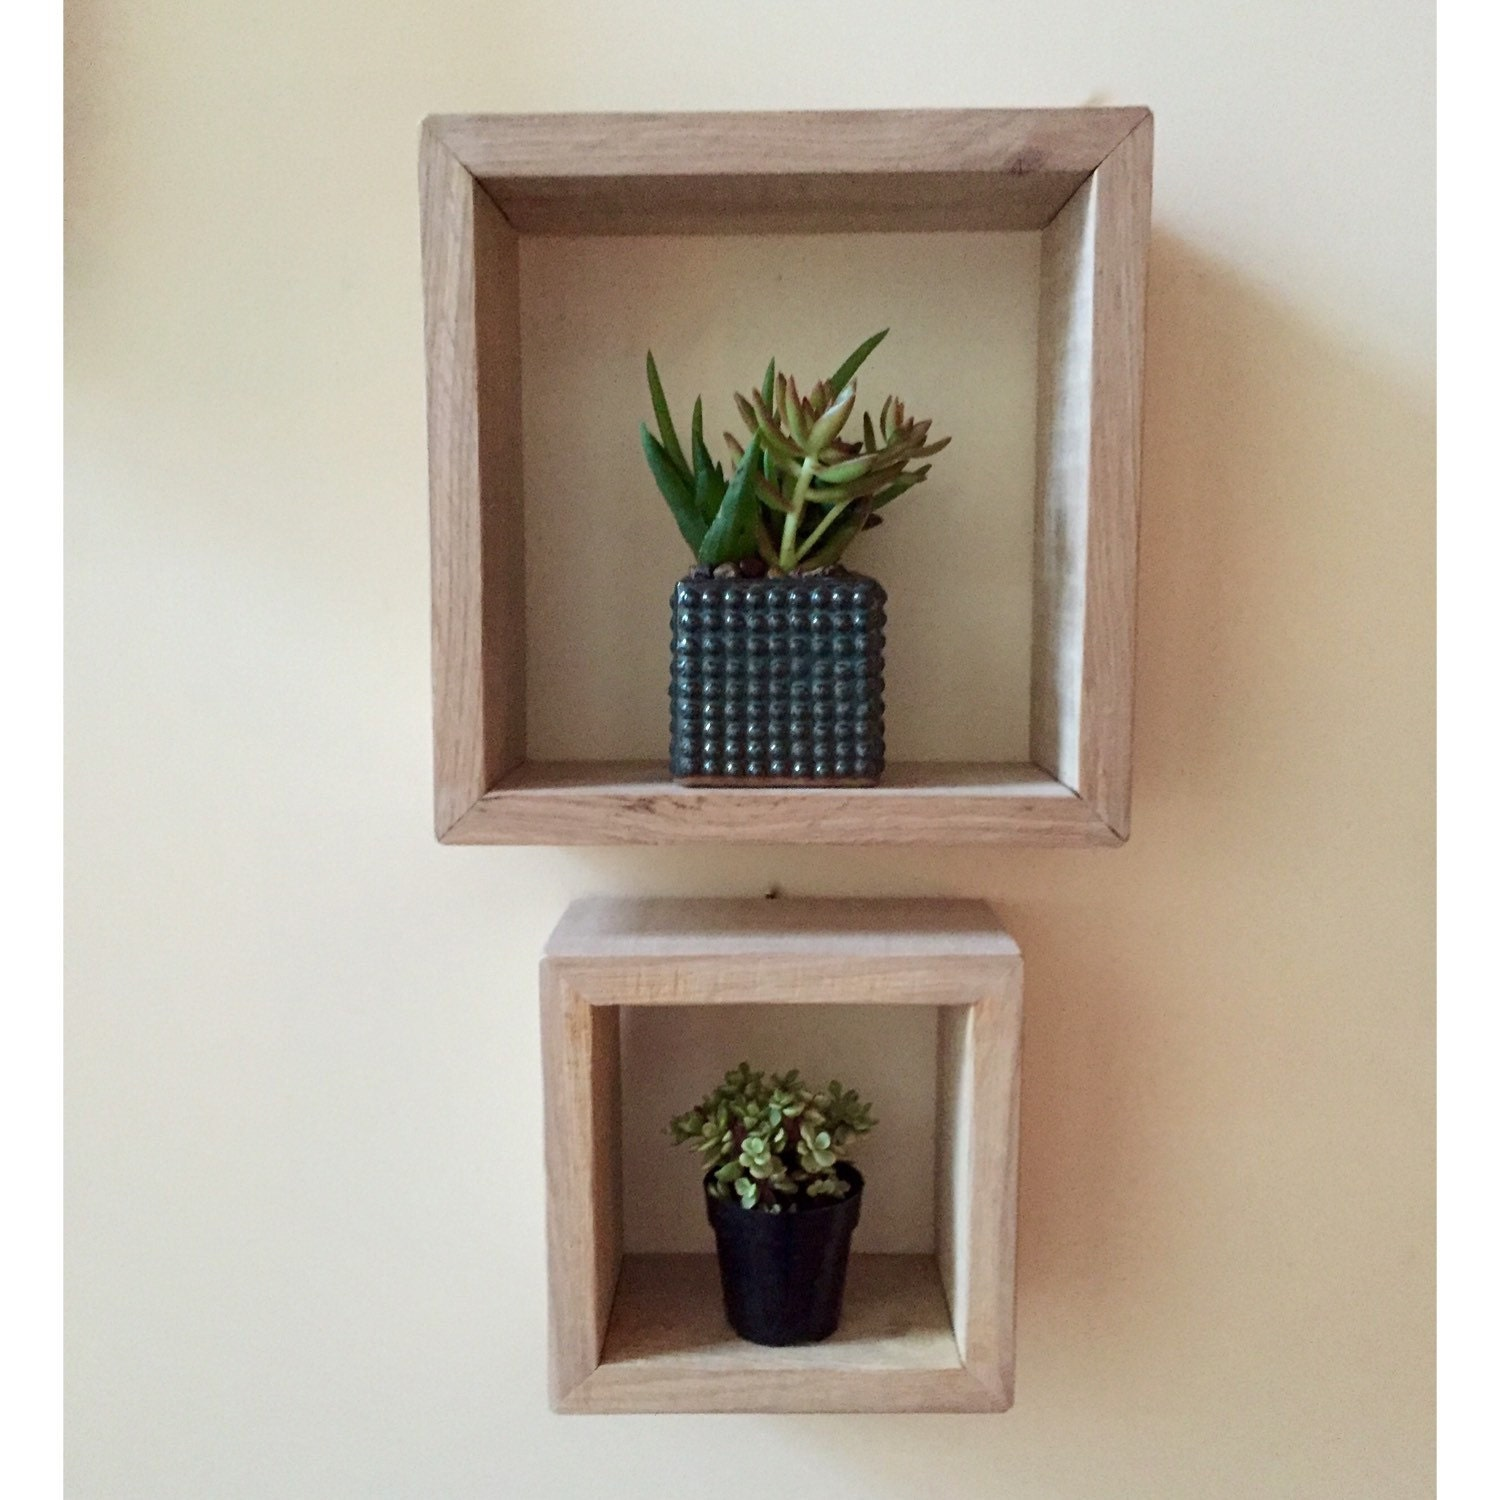 Wall Art Shadow Box : Square shadow box set wall art wooden shelf